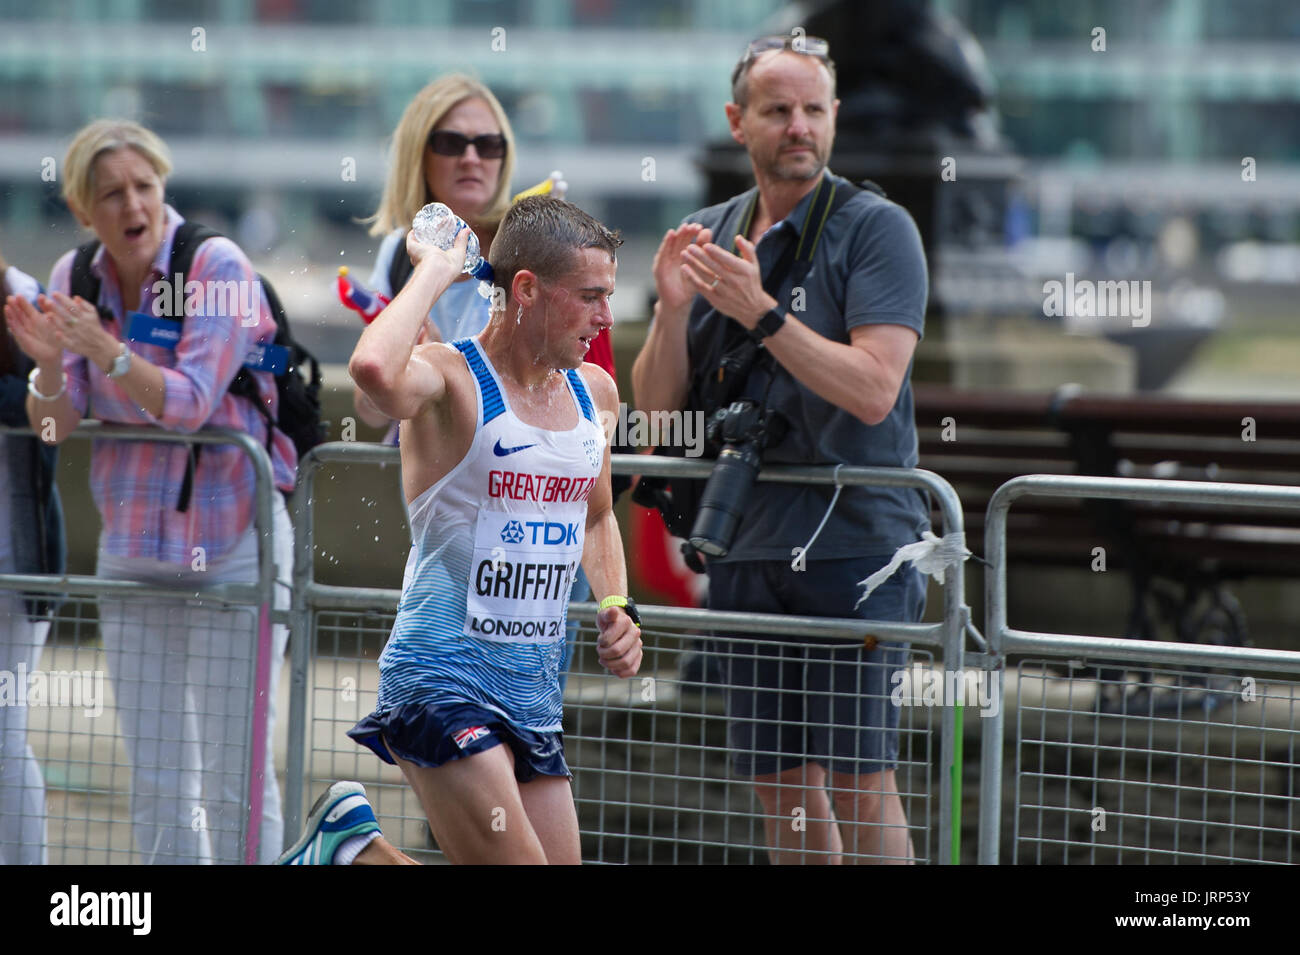 London, UK. 6th August, 2017. Josh Griffiths (Great Britain) taking water refreshment at the IAAF World Athletics Championships Men's Marathon Race Credit: Phil Swallow Photography/Alamy Live News - Stock Image